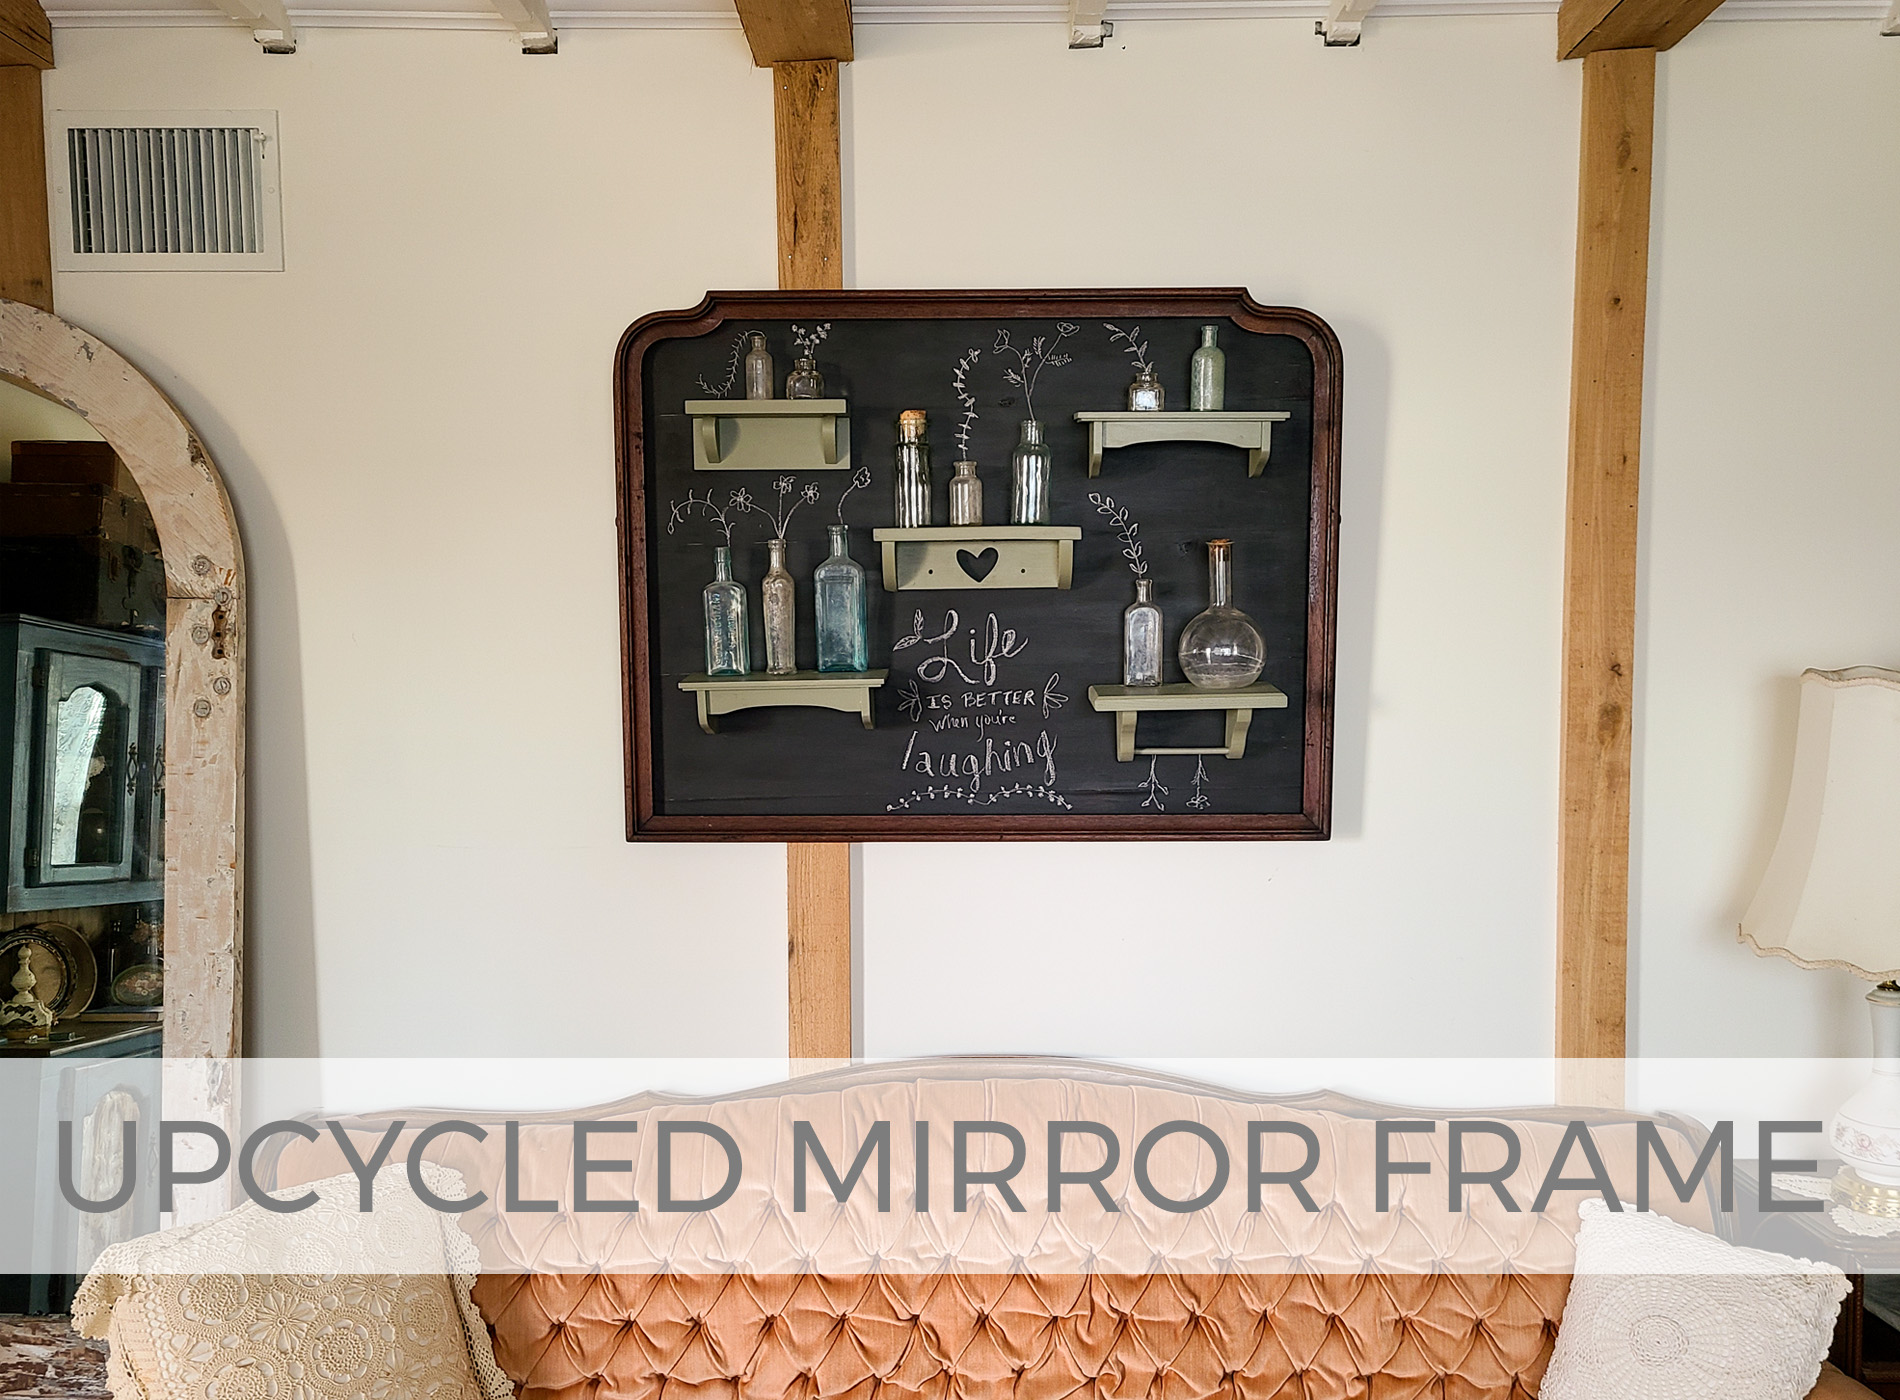 Upcycled Mirror Frame into Chalkboard Style Wall Art by Larissa of Prodigal Pieces | prodigalpieces.com